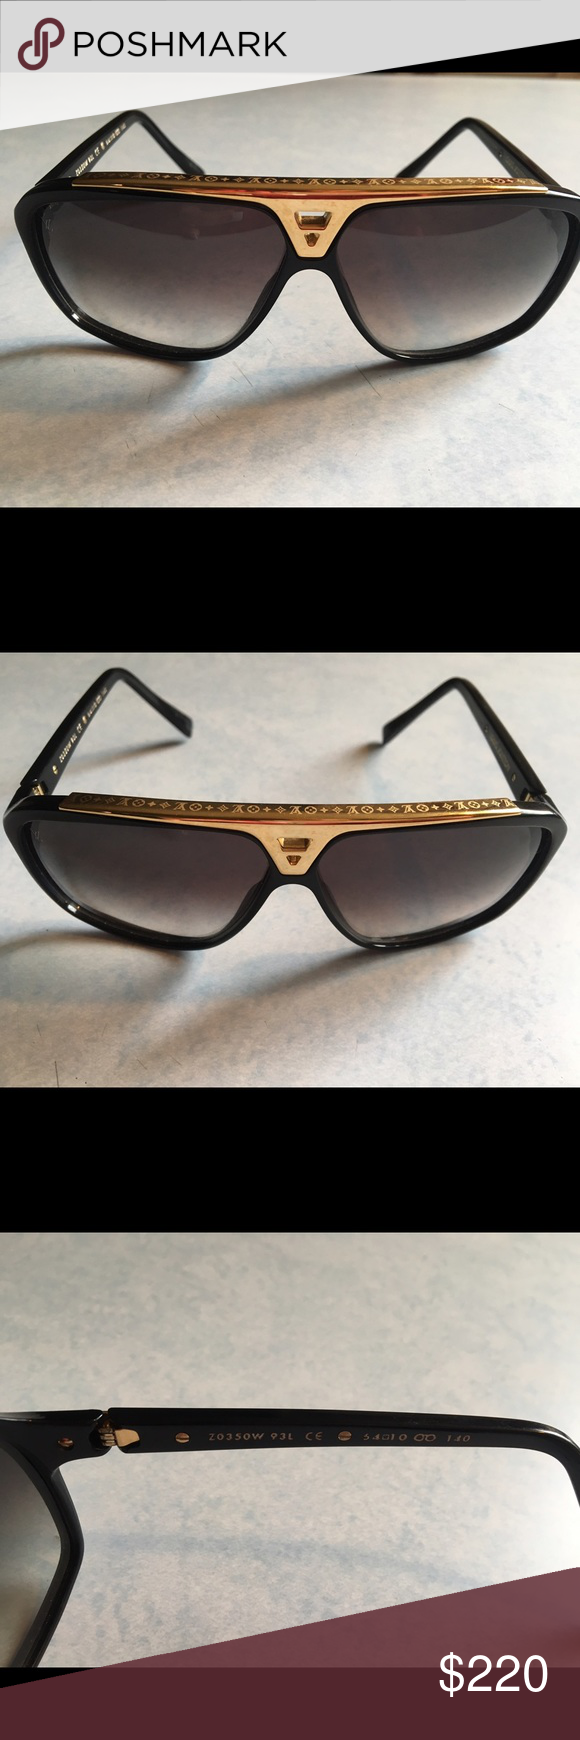 37acaf1744a Louis Vuitton sunglasses LV sunglasses. Like new. Louis Vuitton Accessories  Glasses